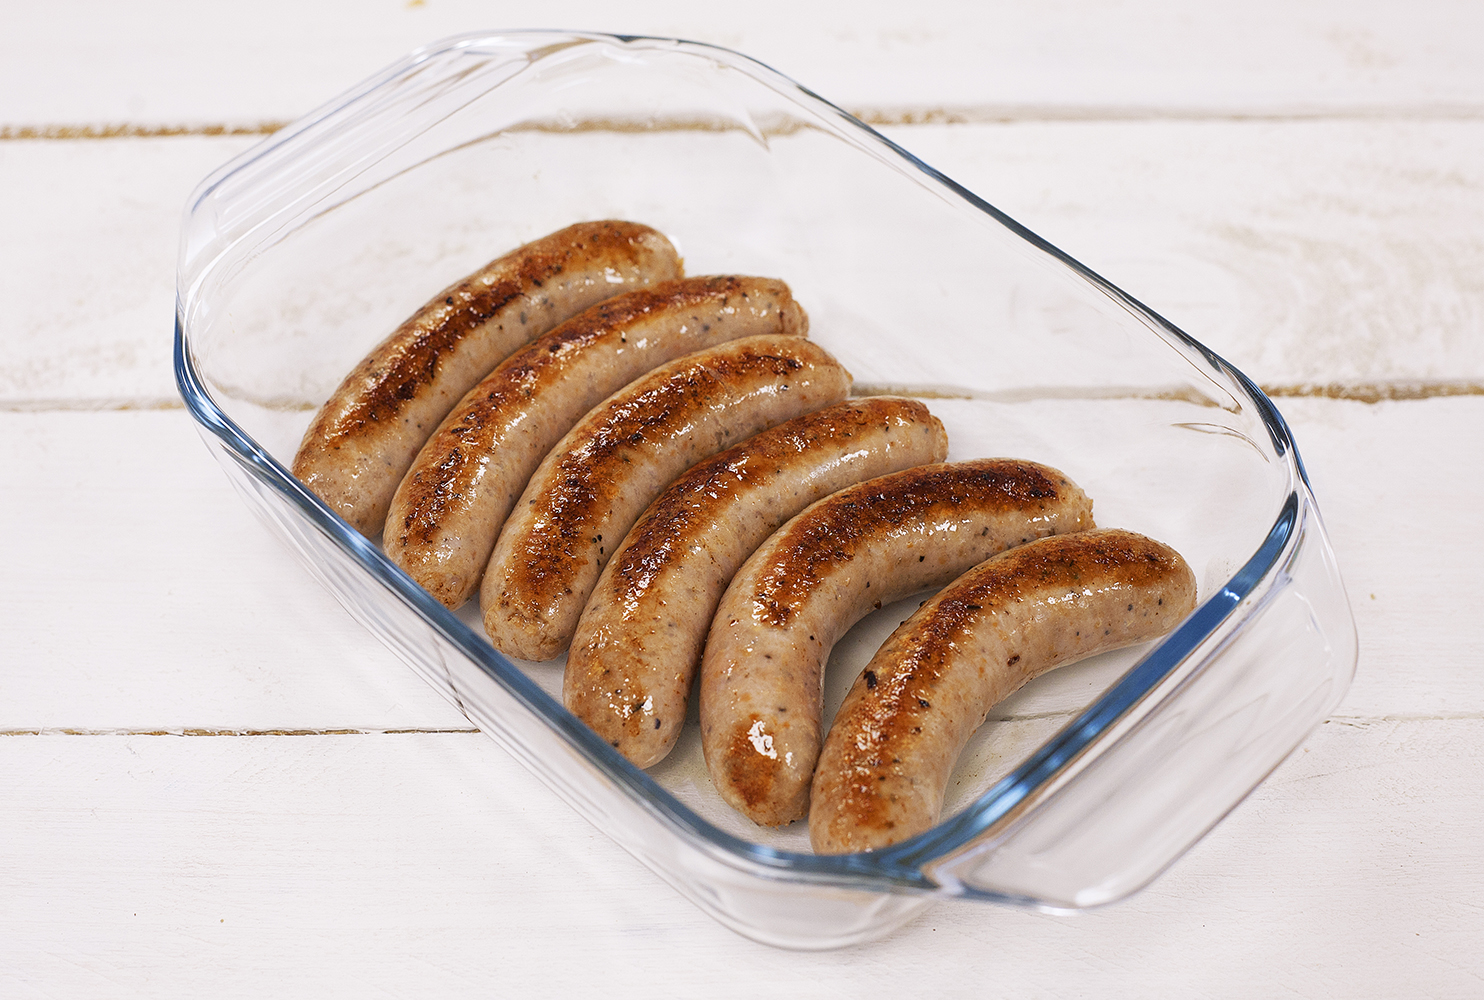 GLUTEN FREE ONION & CRACKED BLACK PEPPER SAUSAGE MIX